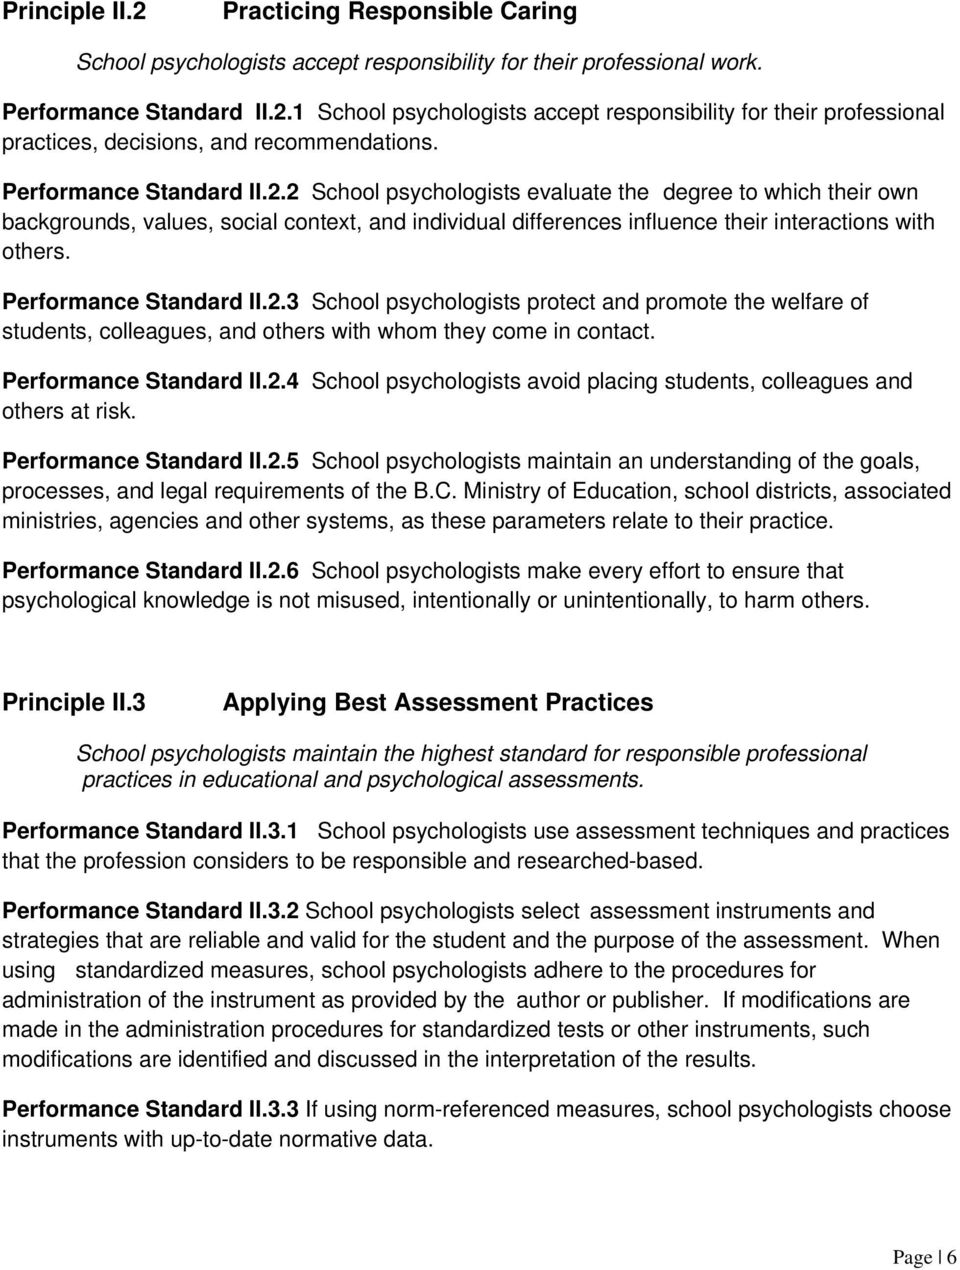 Performance Standard II.2.3 School psychologists protect and promote the welfare of students, colleagues, and others with whom they come in contact. Performance Standard II.2.4 School psychologists avoid placing students, colleagues and others at risk.